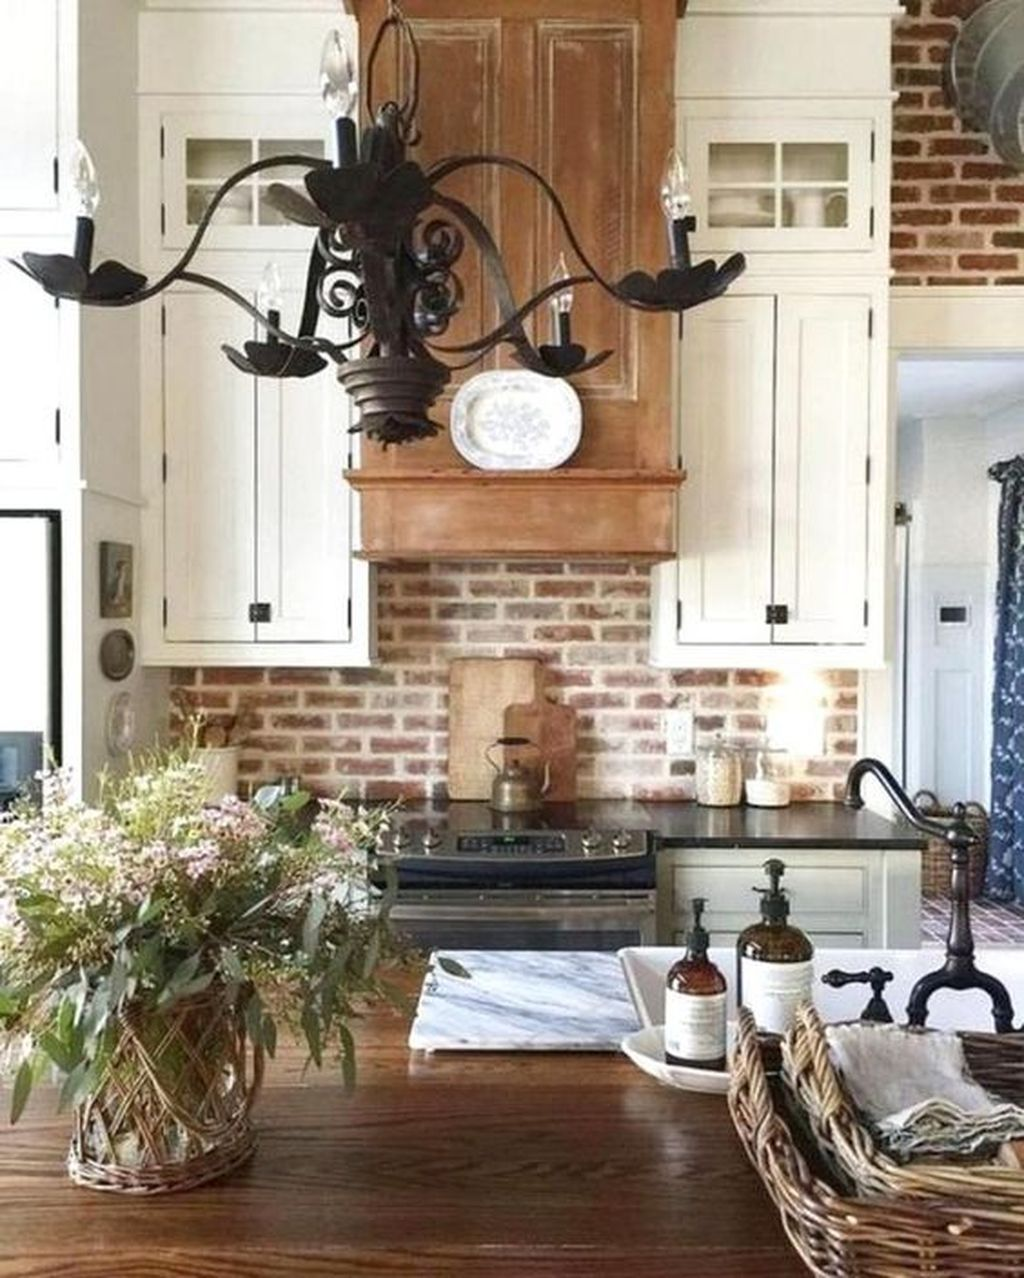 46 Inspiring Rustic Country Kitchen Ideas To Renew Your Ordinary Kitchen Trendehouse Rustic Country Kitchens Rustic Farmhouse Kitchen Rustic Kitchen